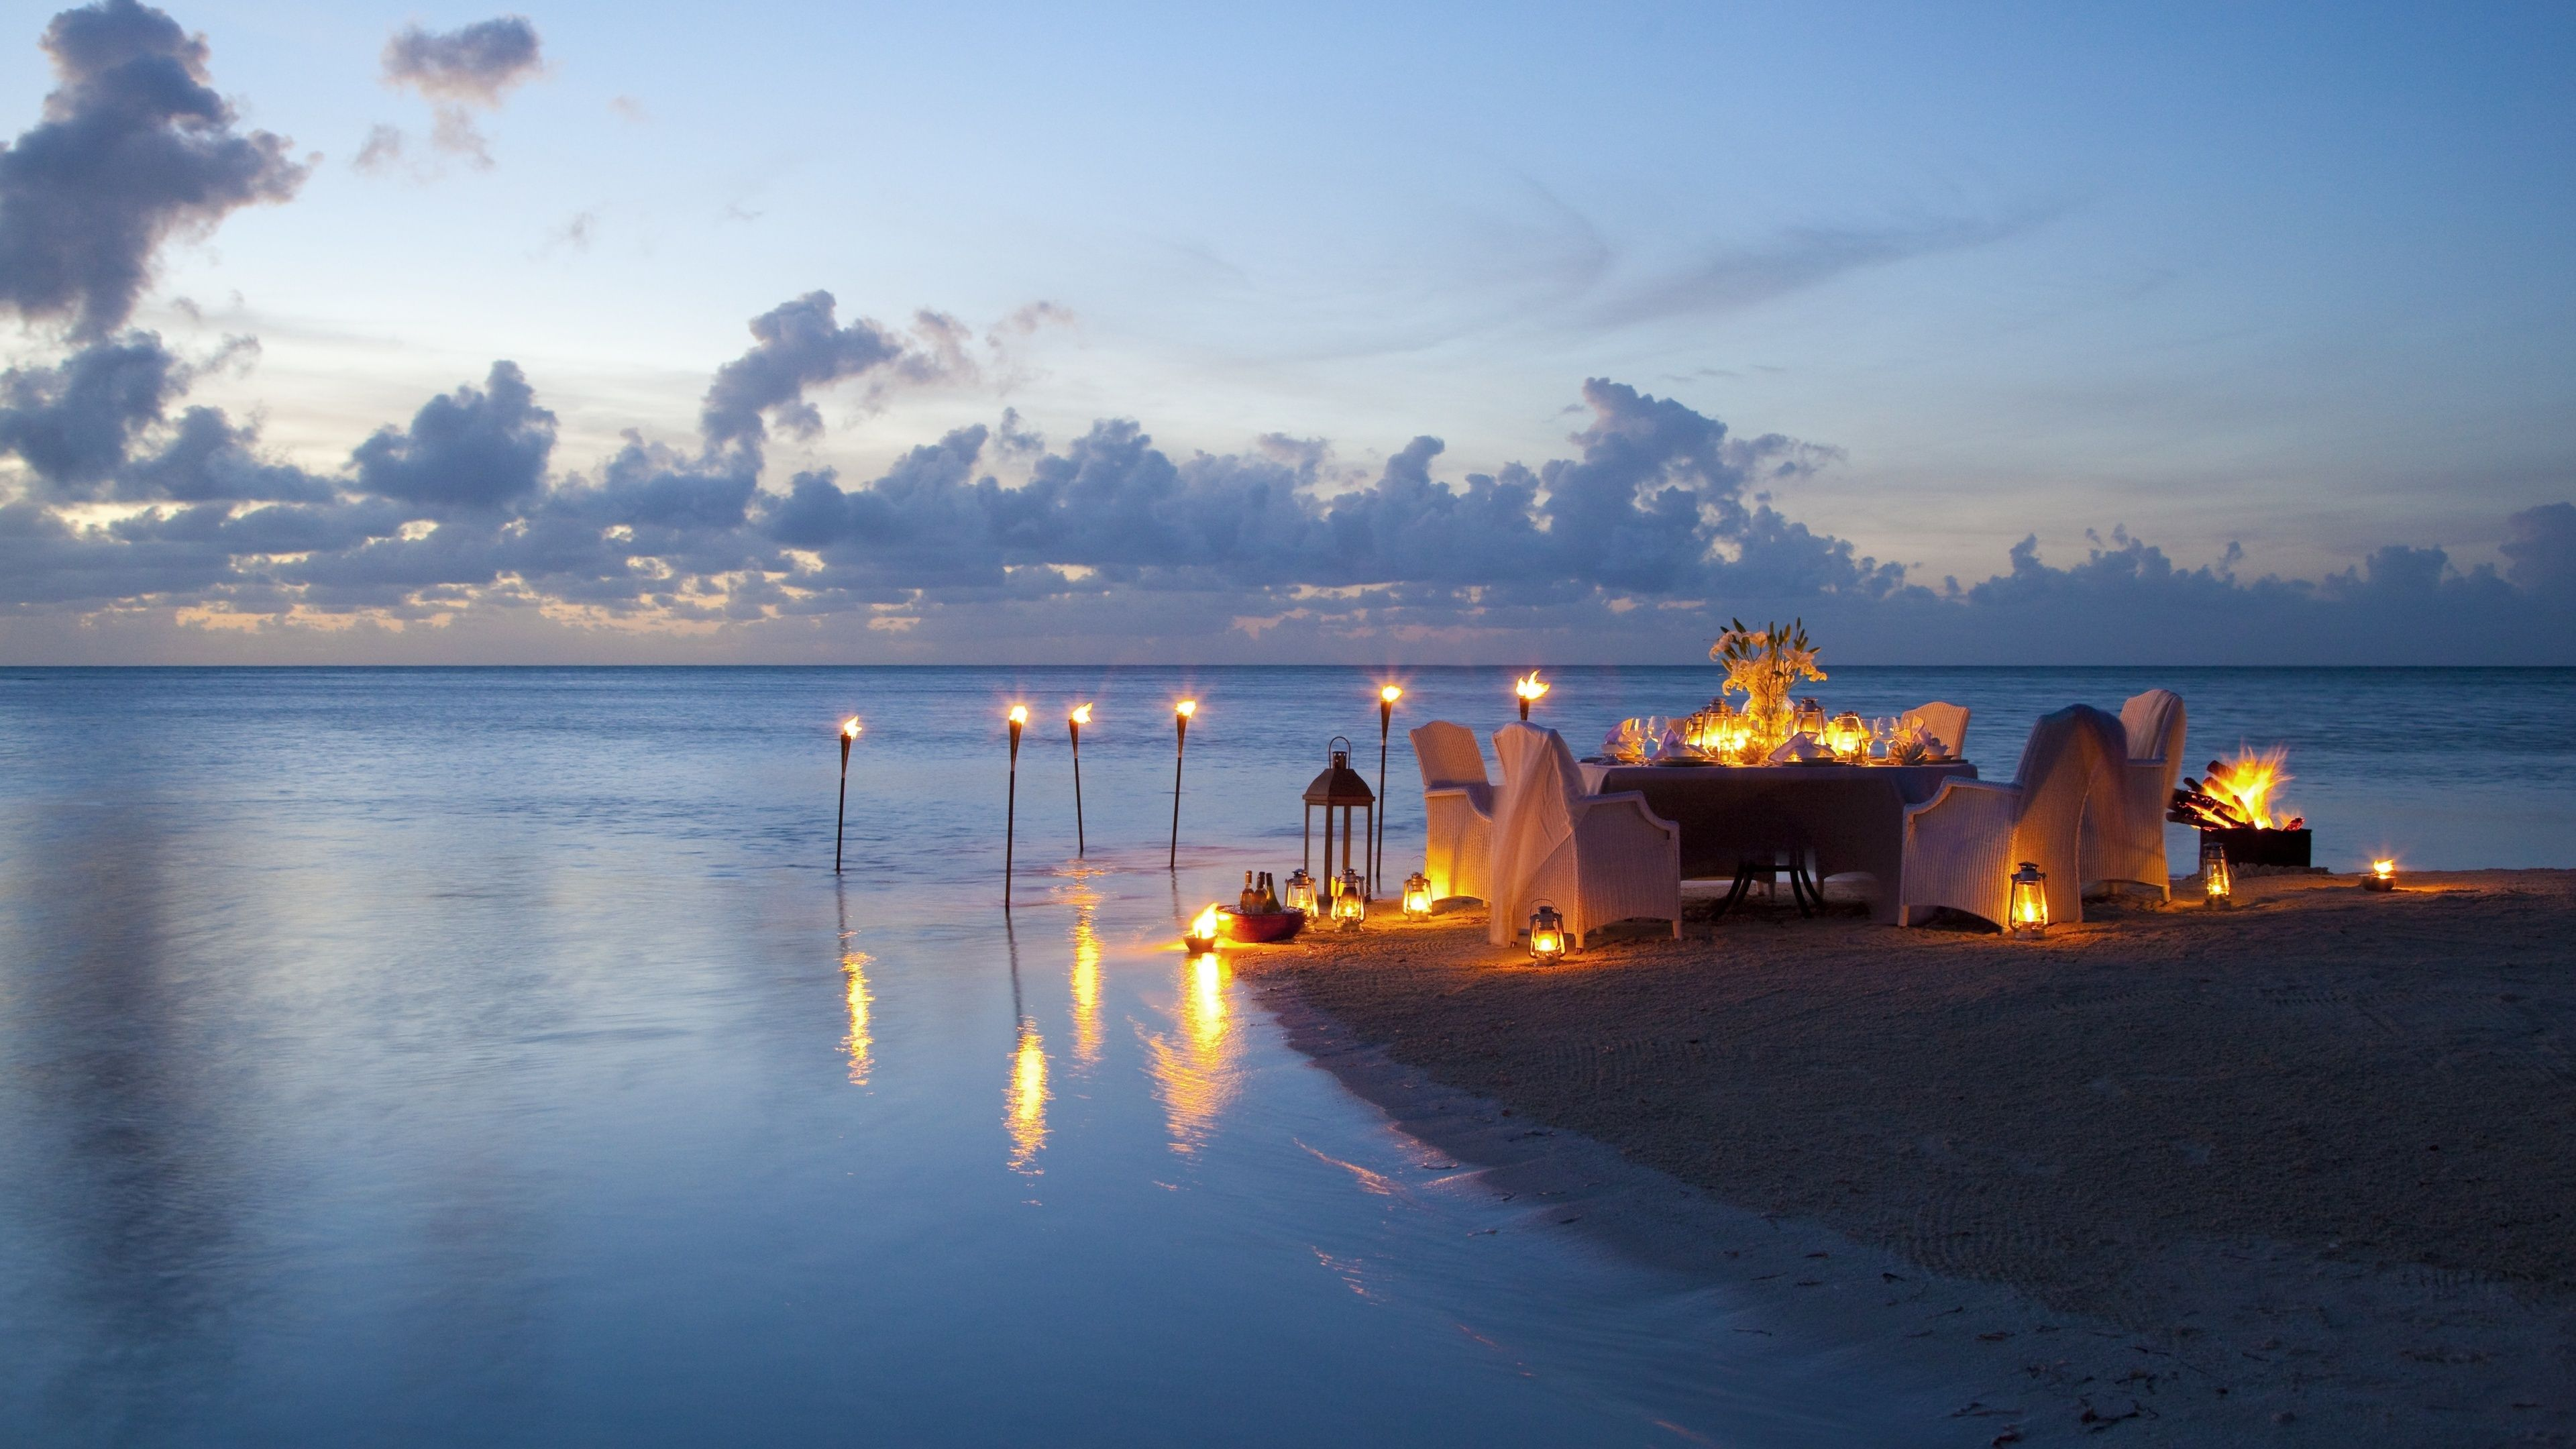 Awesome Romantic Candle Light Dinner At Beach Check More At